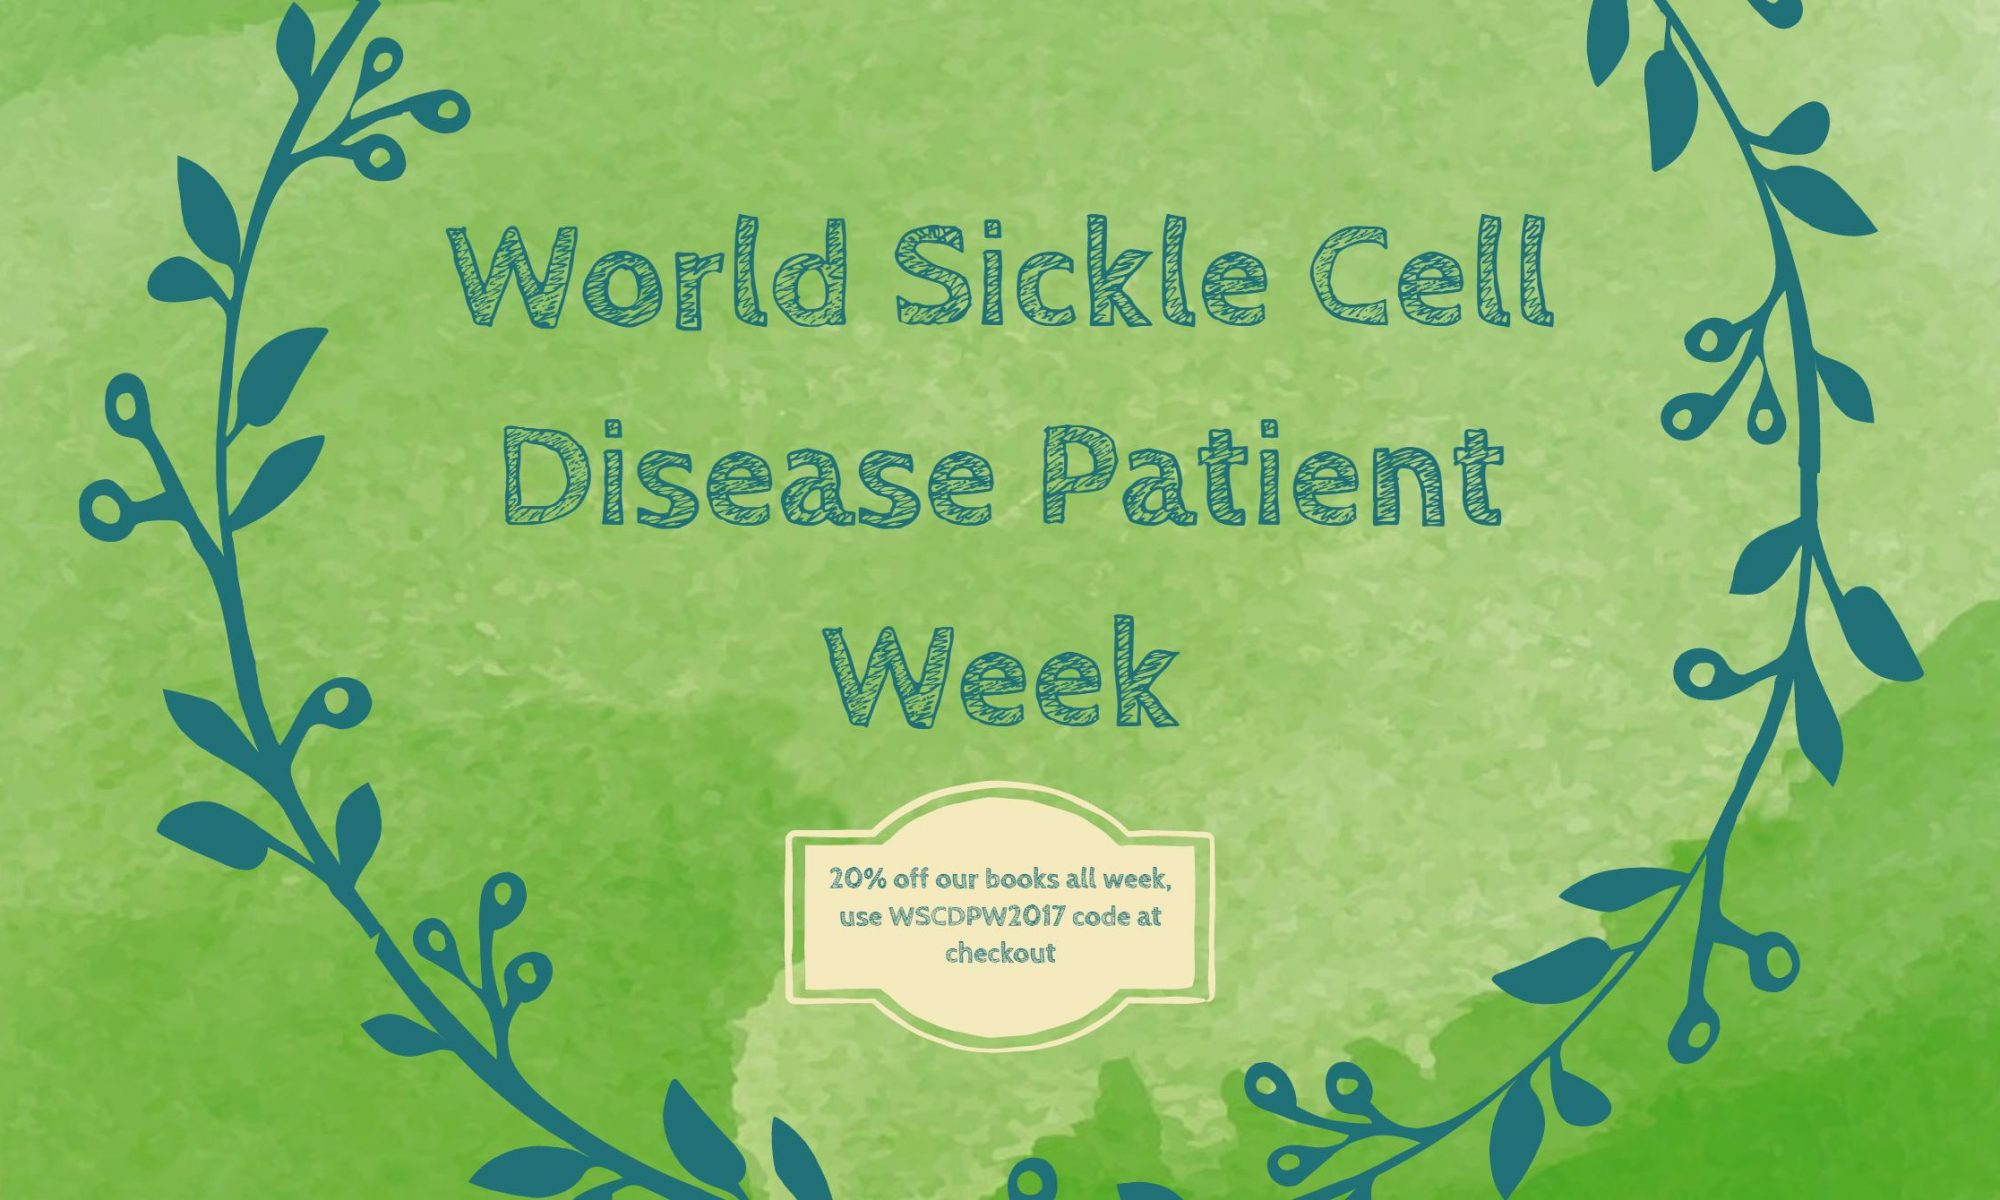 World Sickle Cell Patient week